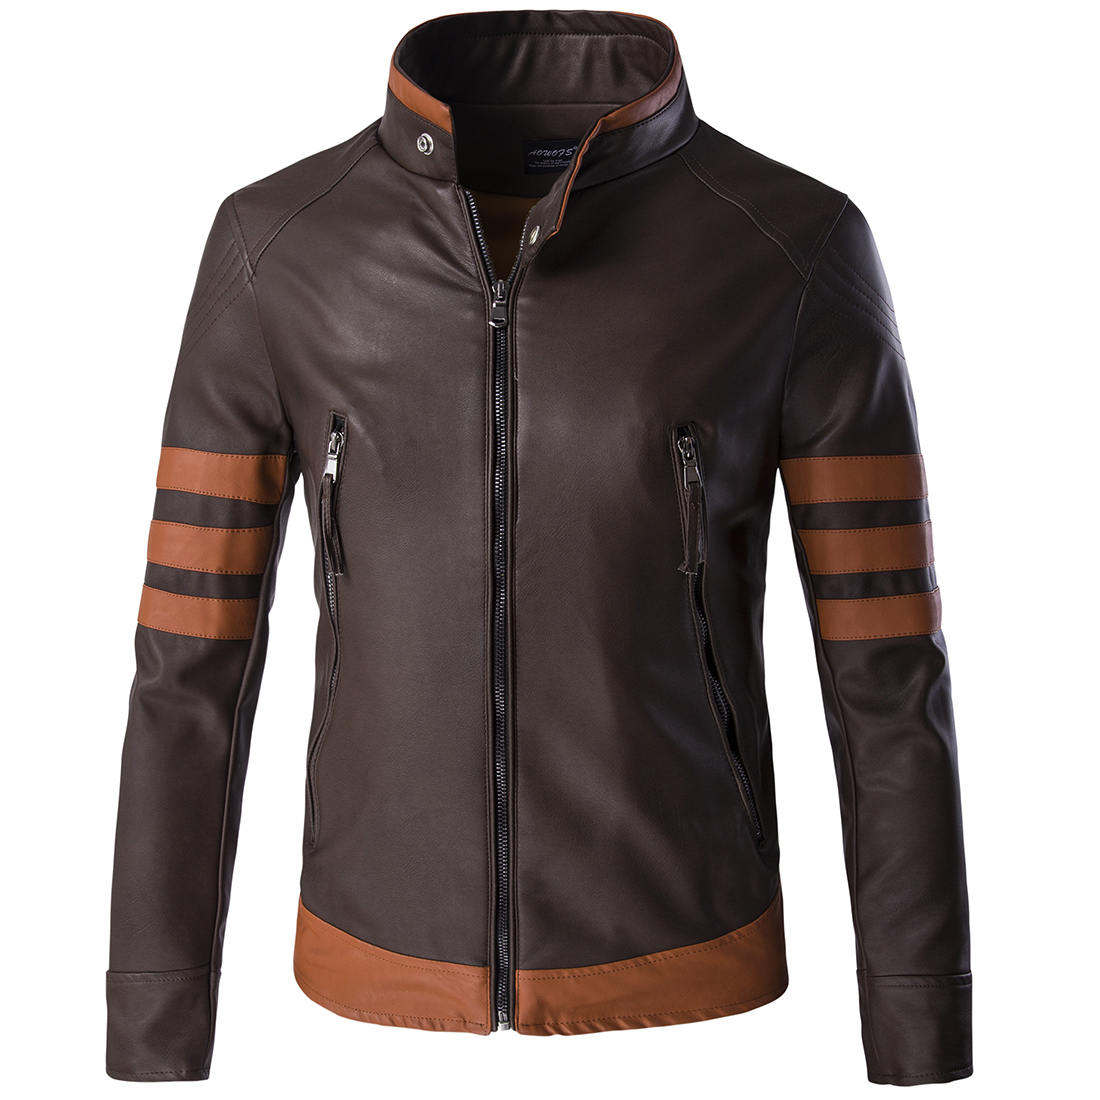 Compare Prices on Mens Leather Jacket- Online Shopping/Buy Low ...